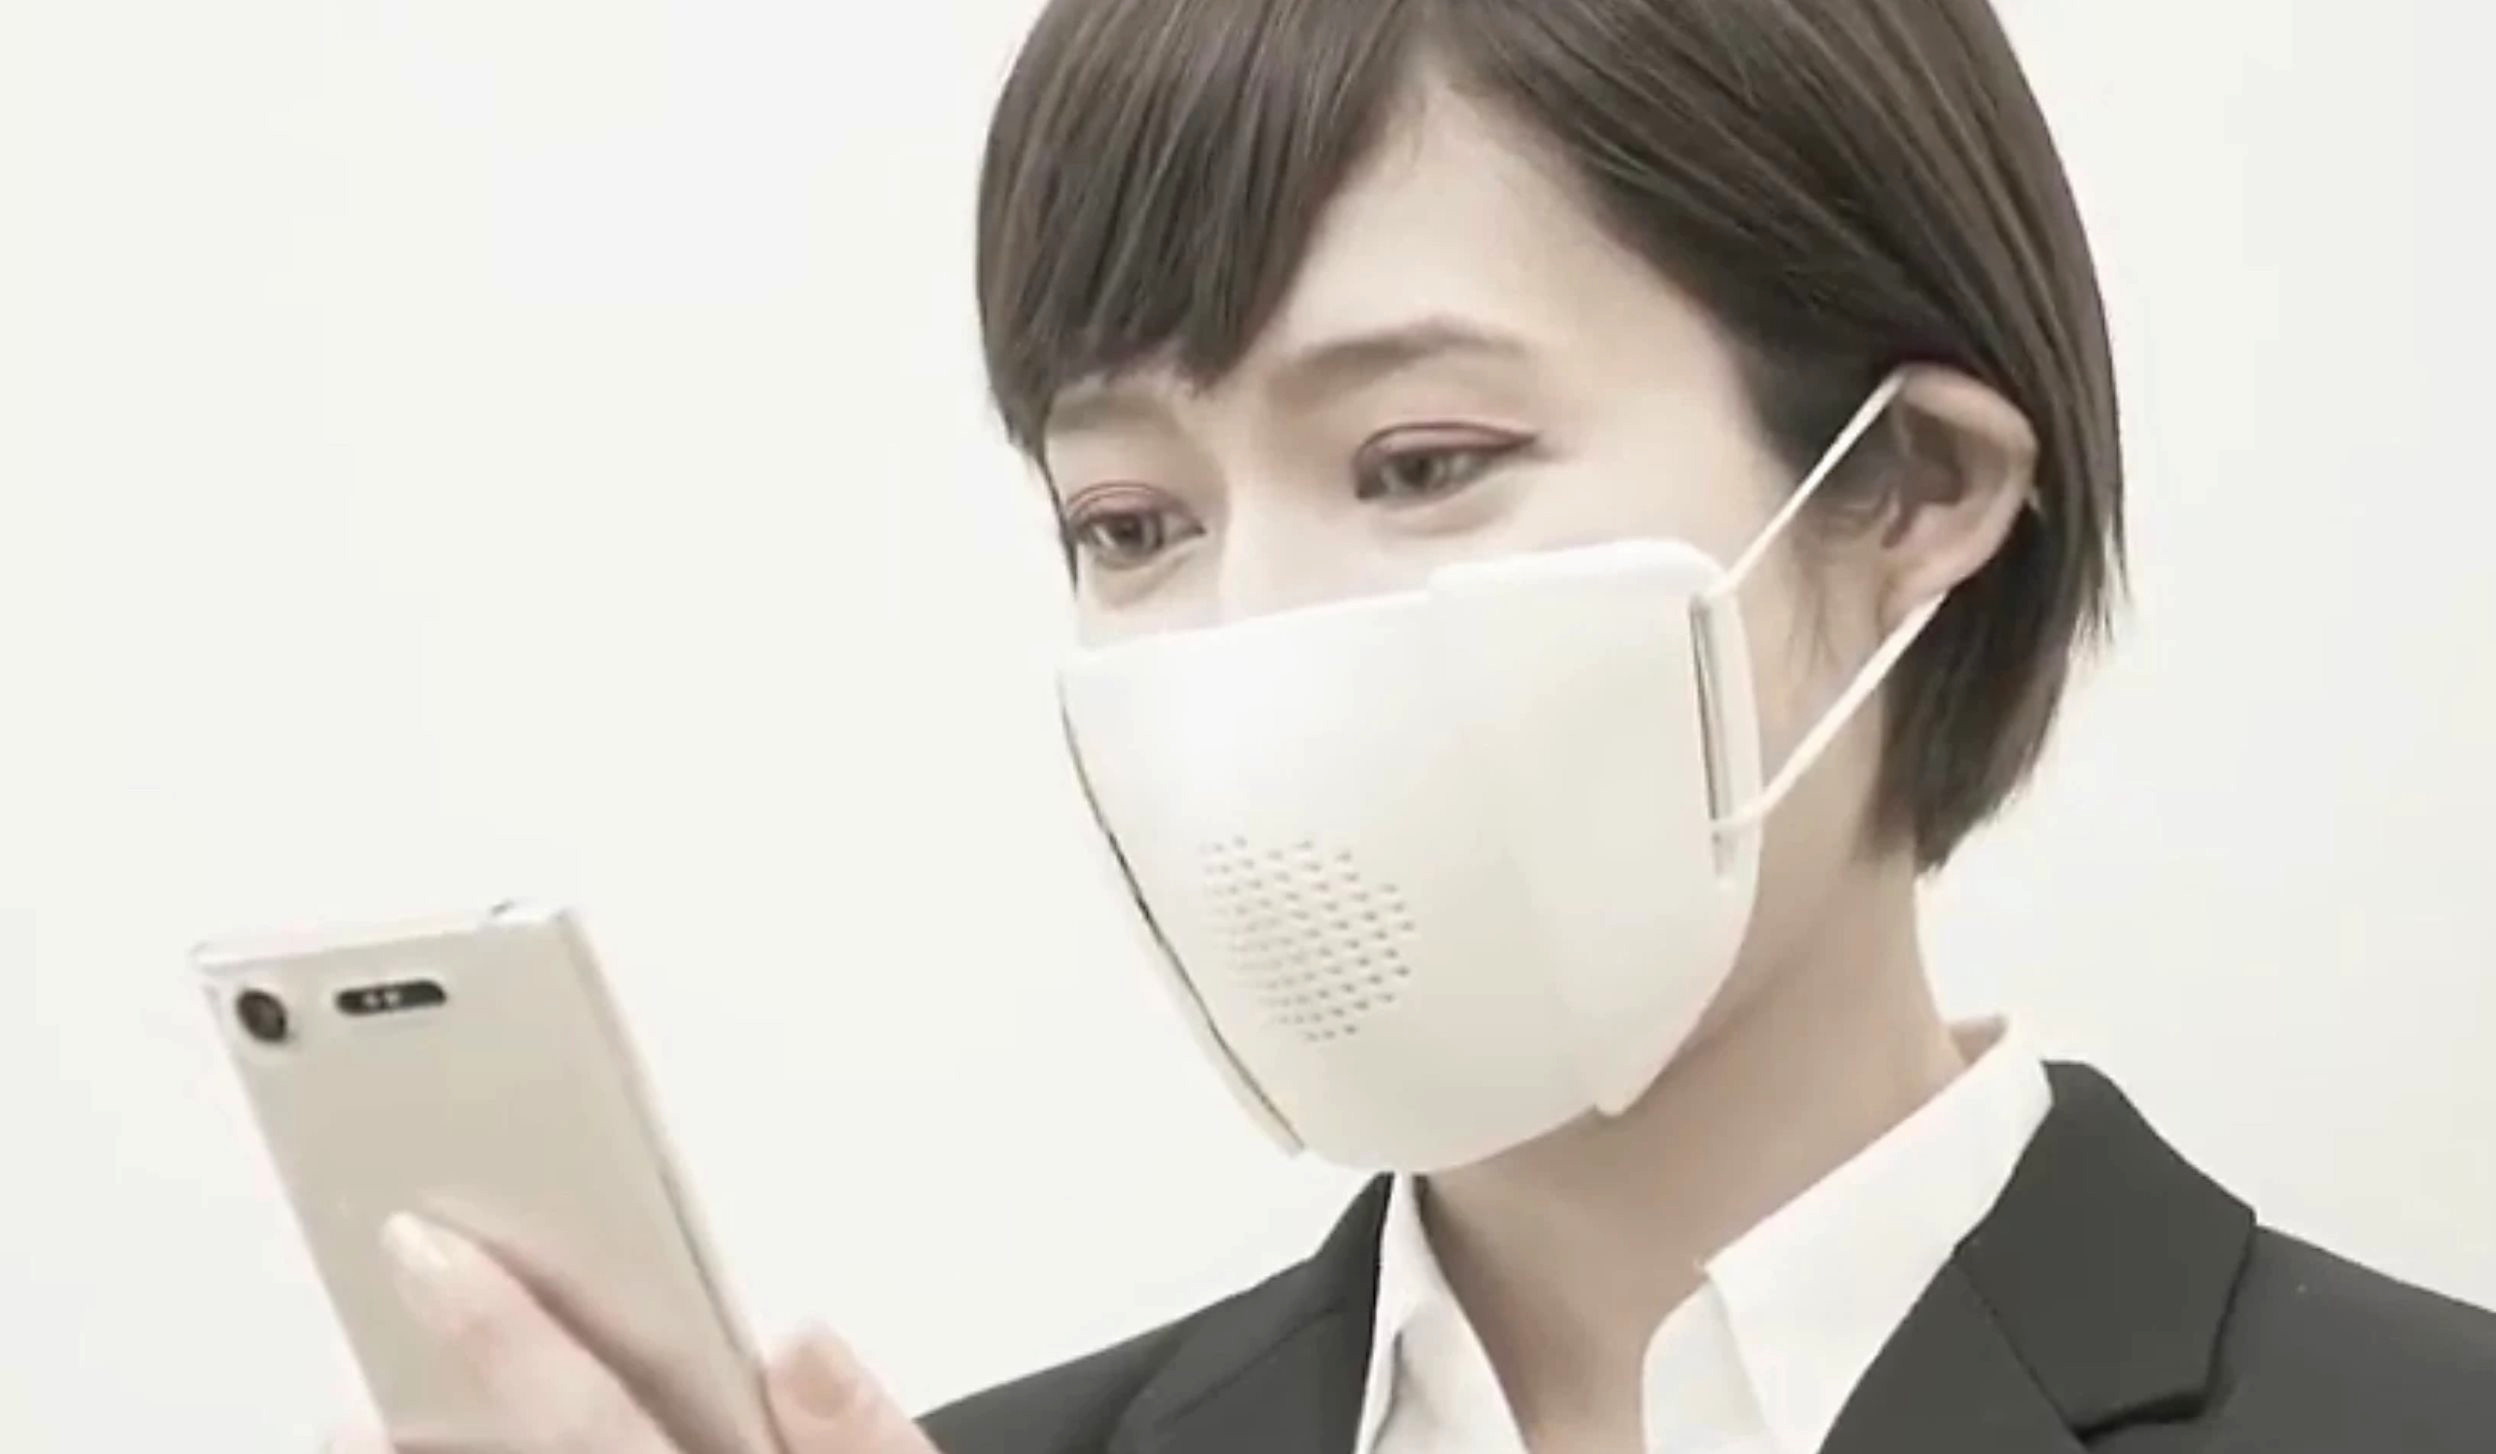 Japanese Startup Makes 'Connected' Face Mask for Coronavirus Crisis